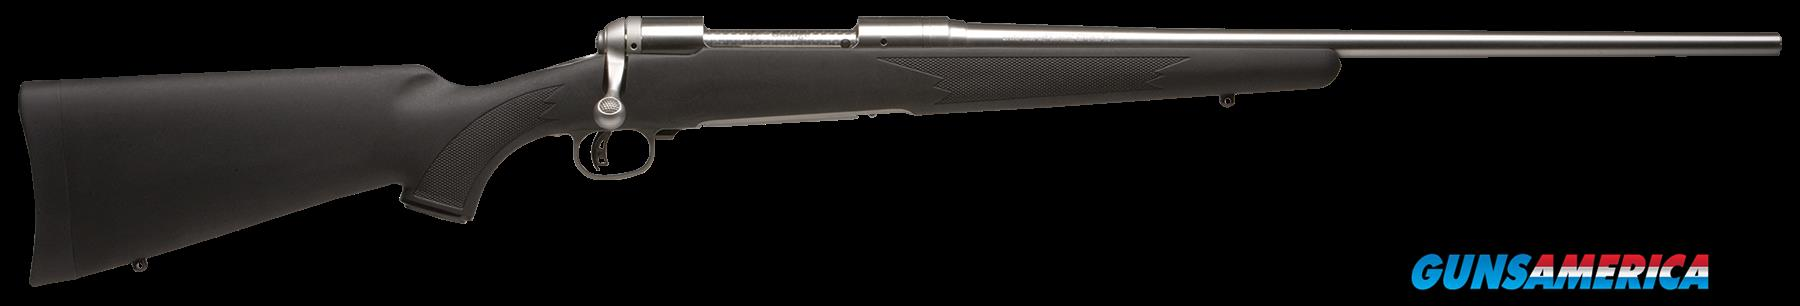 "Savage 17802 16/116 FCSS Bolt 300 Win Mag 24"" 3+1 Accustock Black Stk Stainless Steel  Guns > Rifles > S Misc Rifles"